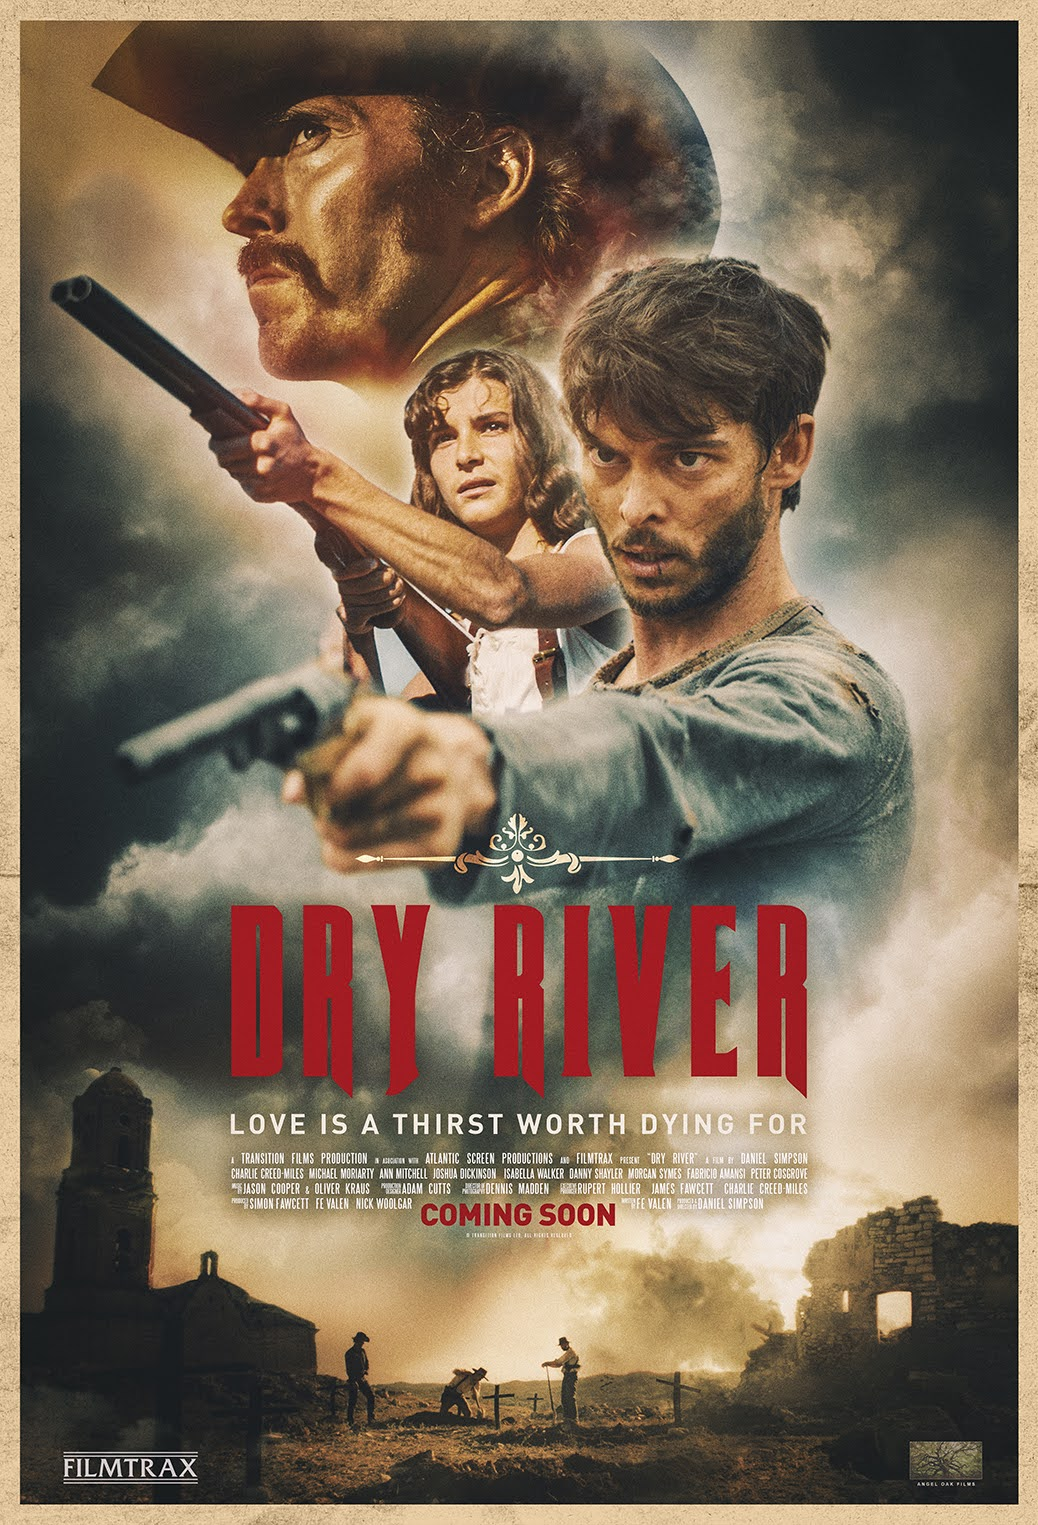 Gunfight at Dry River 2